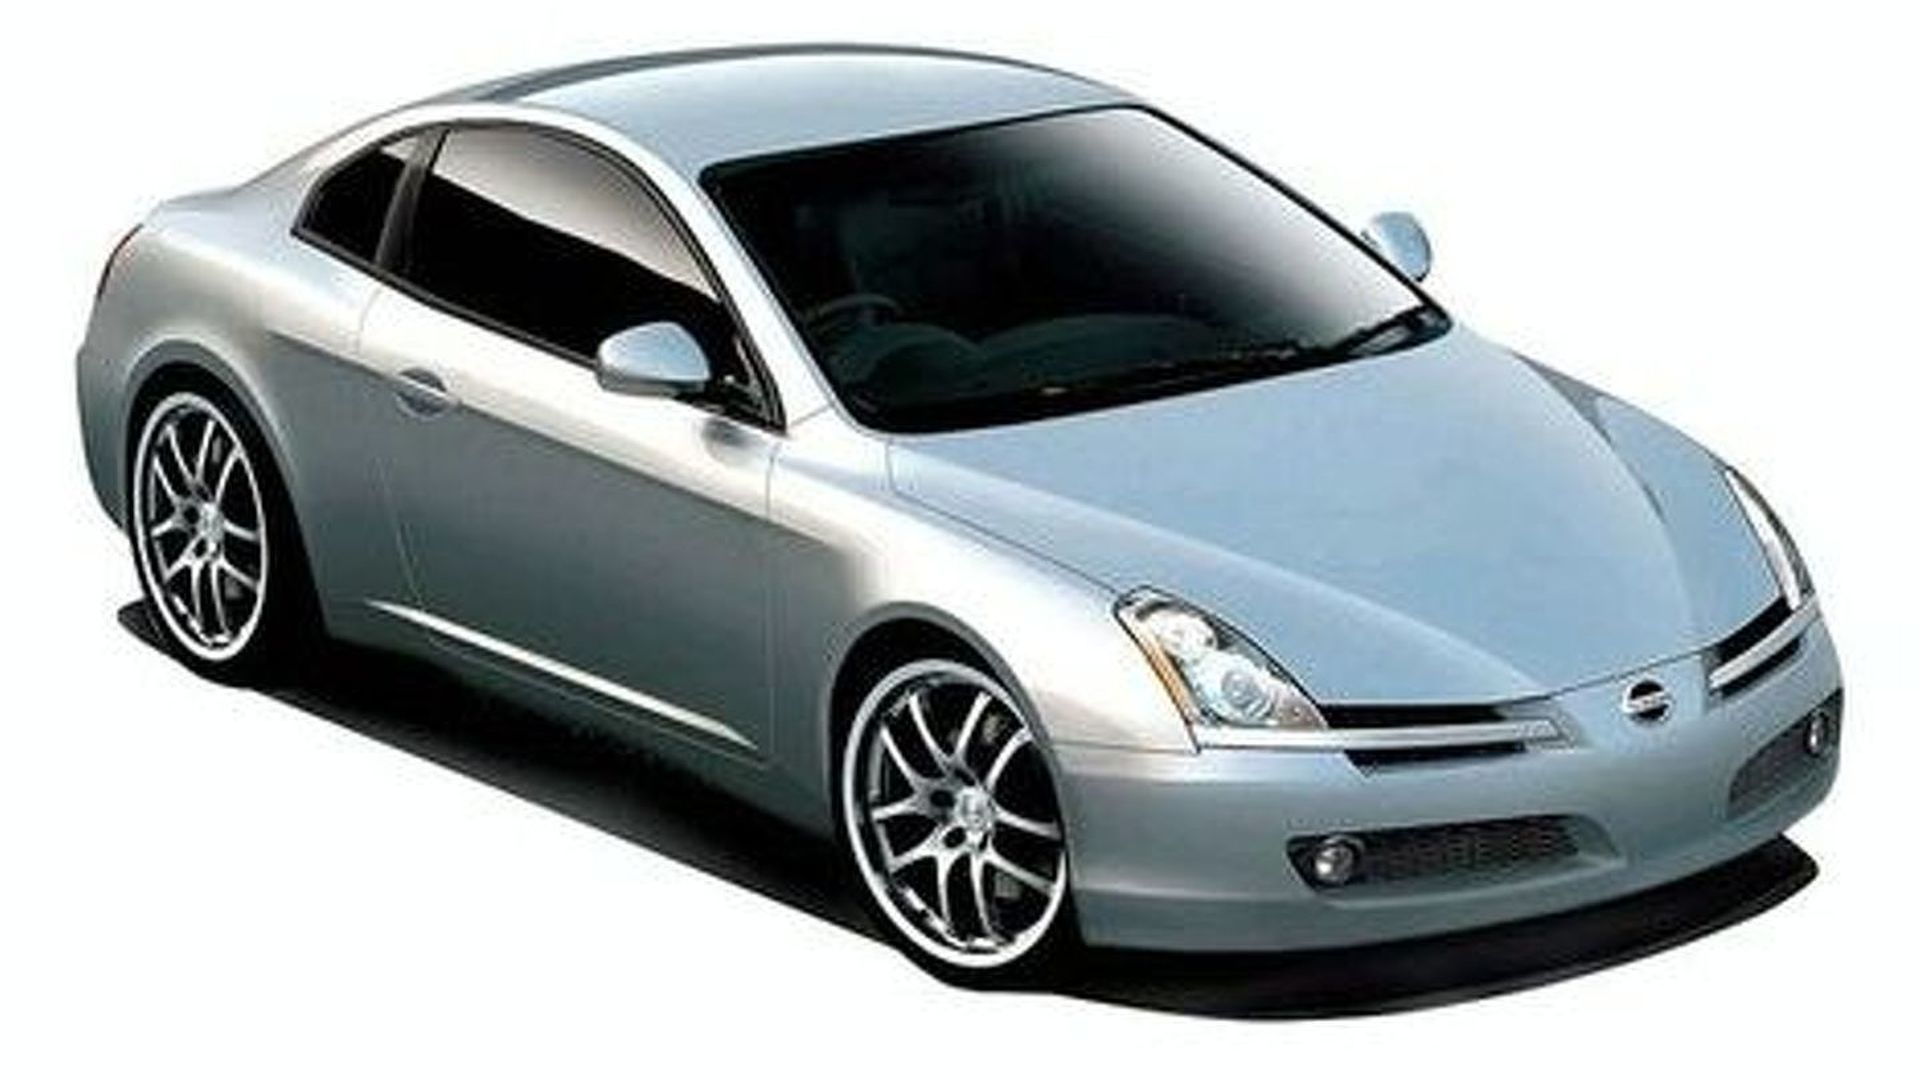 Nissan 240SX Rumoured for 2010 Comeback